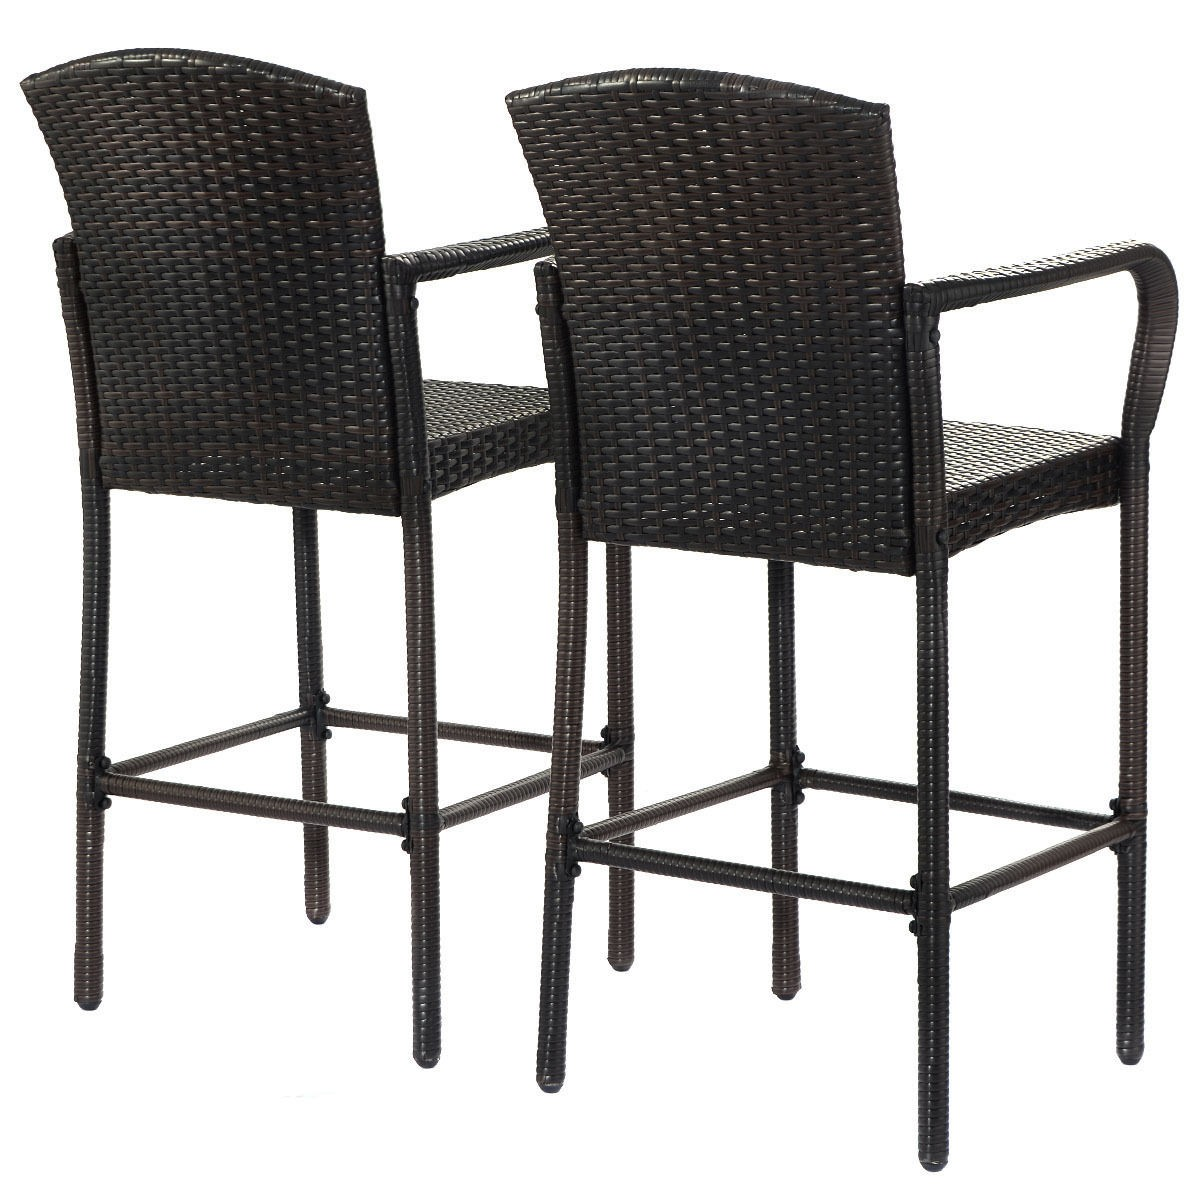 2 Pcs Rattan Wicker Bar Stool High Counter Armrest Chair